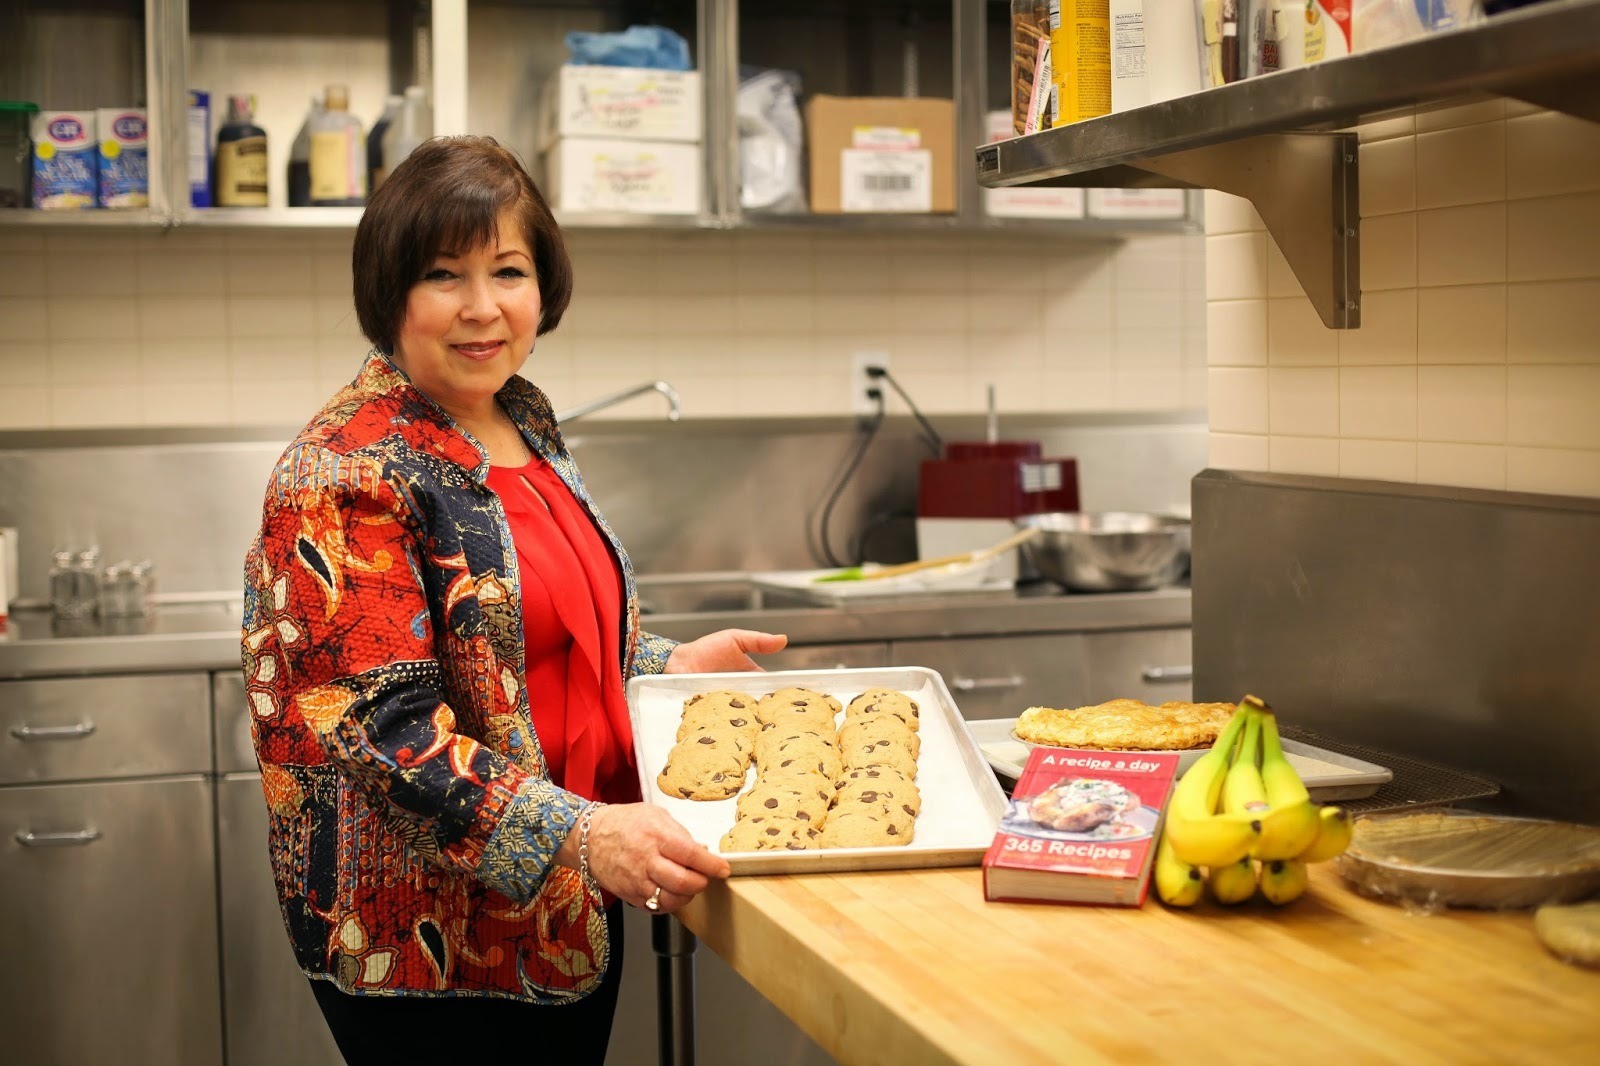 Rose (wearing a beautiful red pattern jacket) poses in the GDB kitchen with freshly baked cookies.